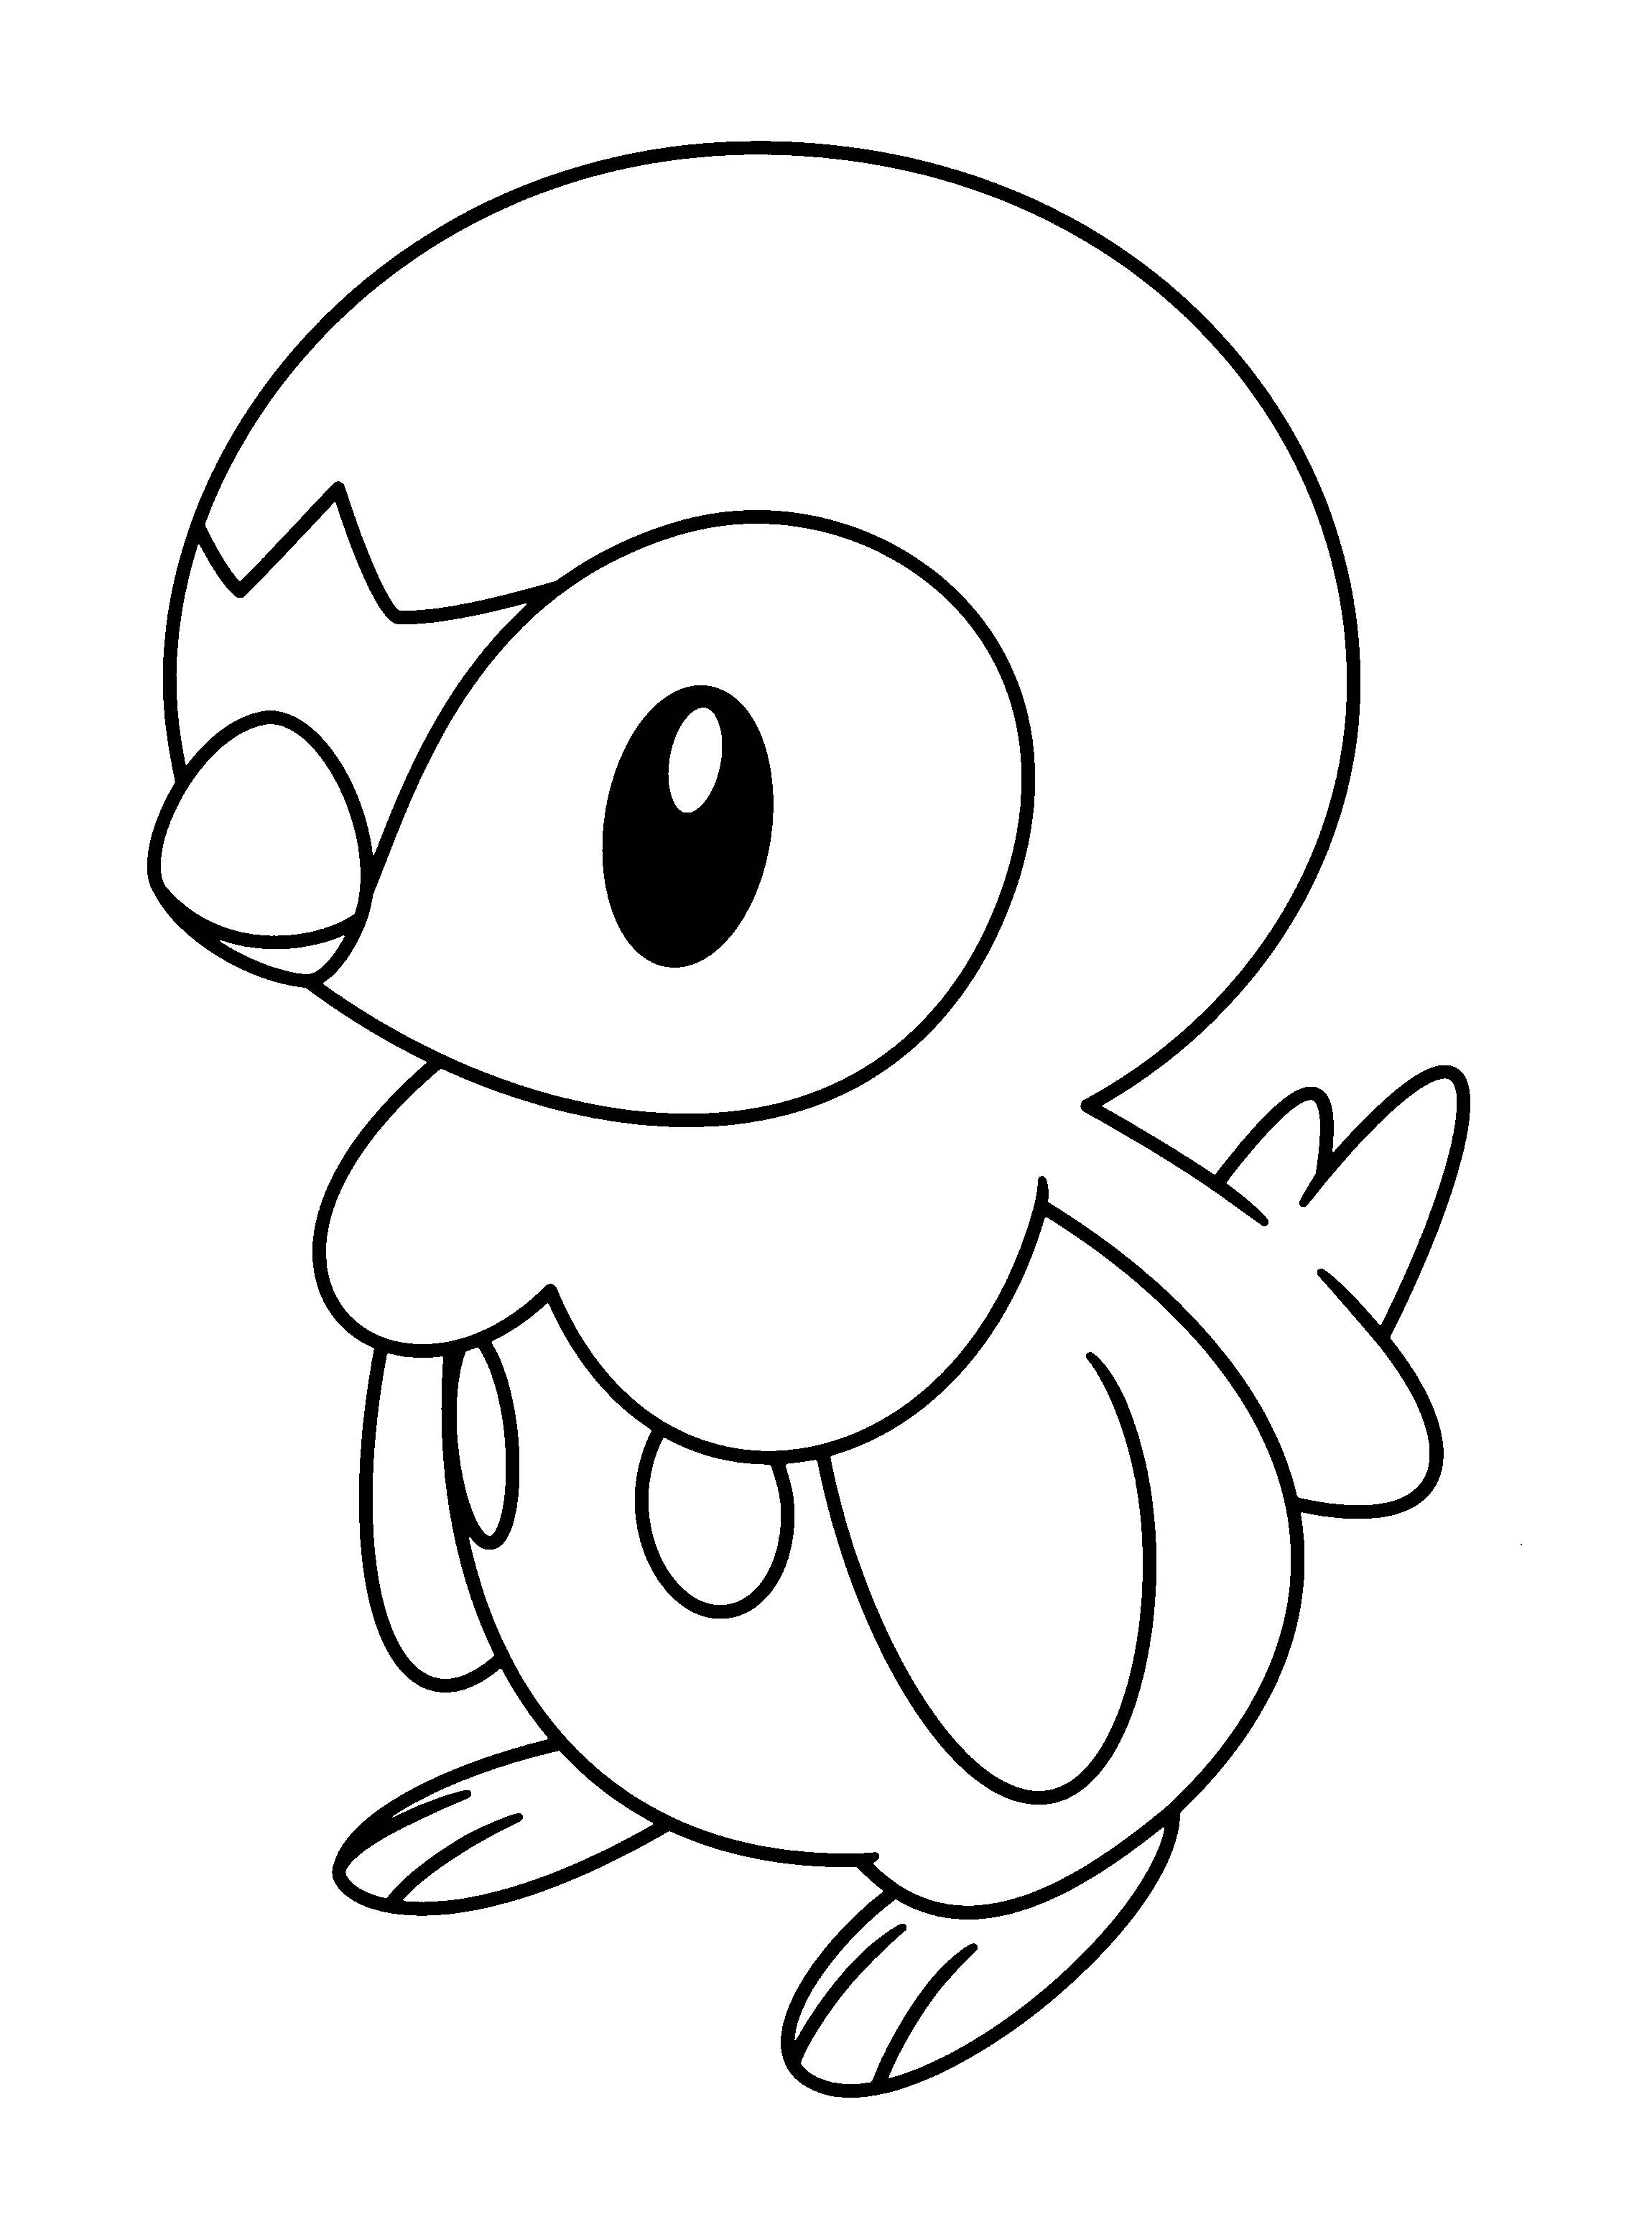 Coloring Sheet Pokemon : 10 coloring pages of pokemon Print Color Craft